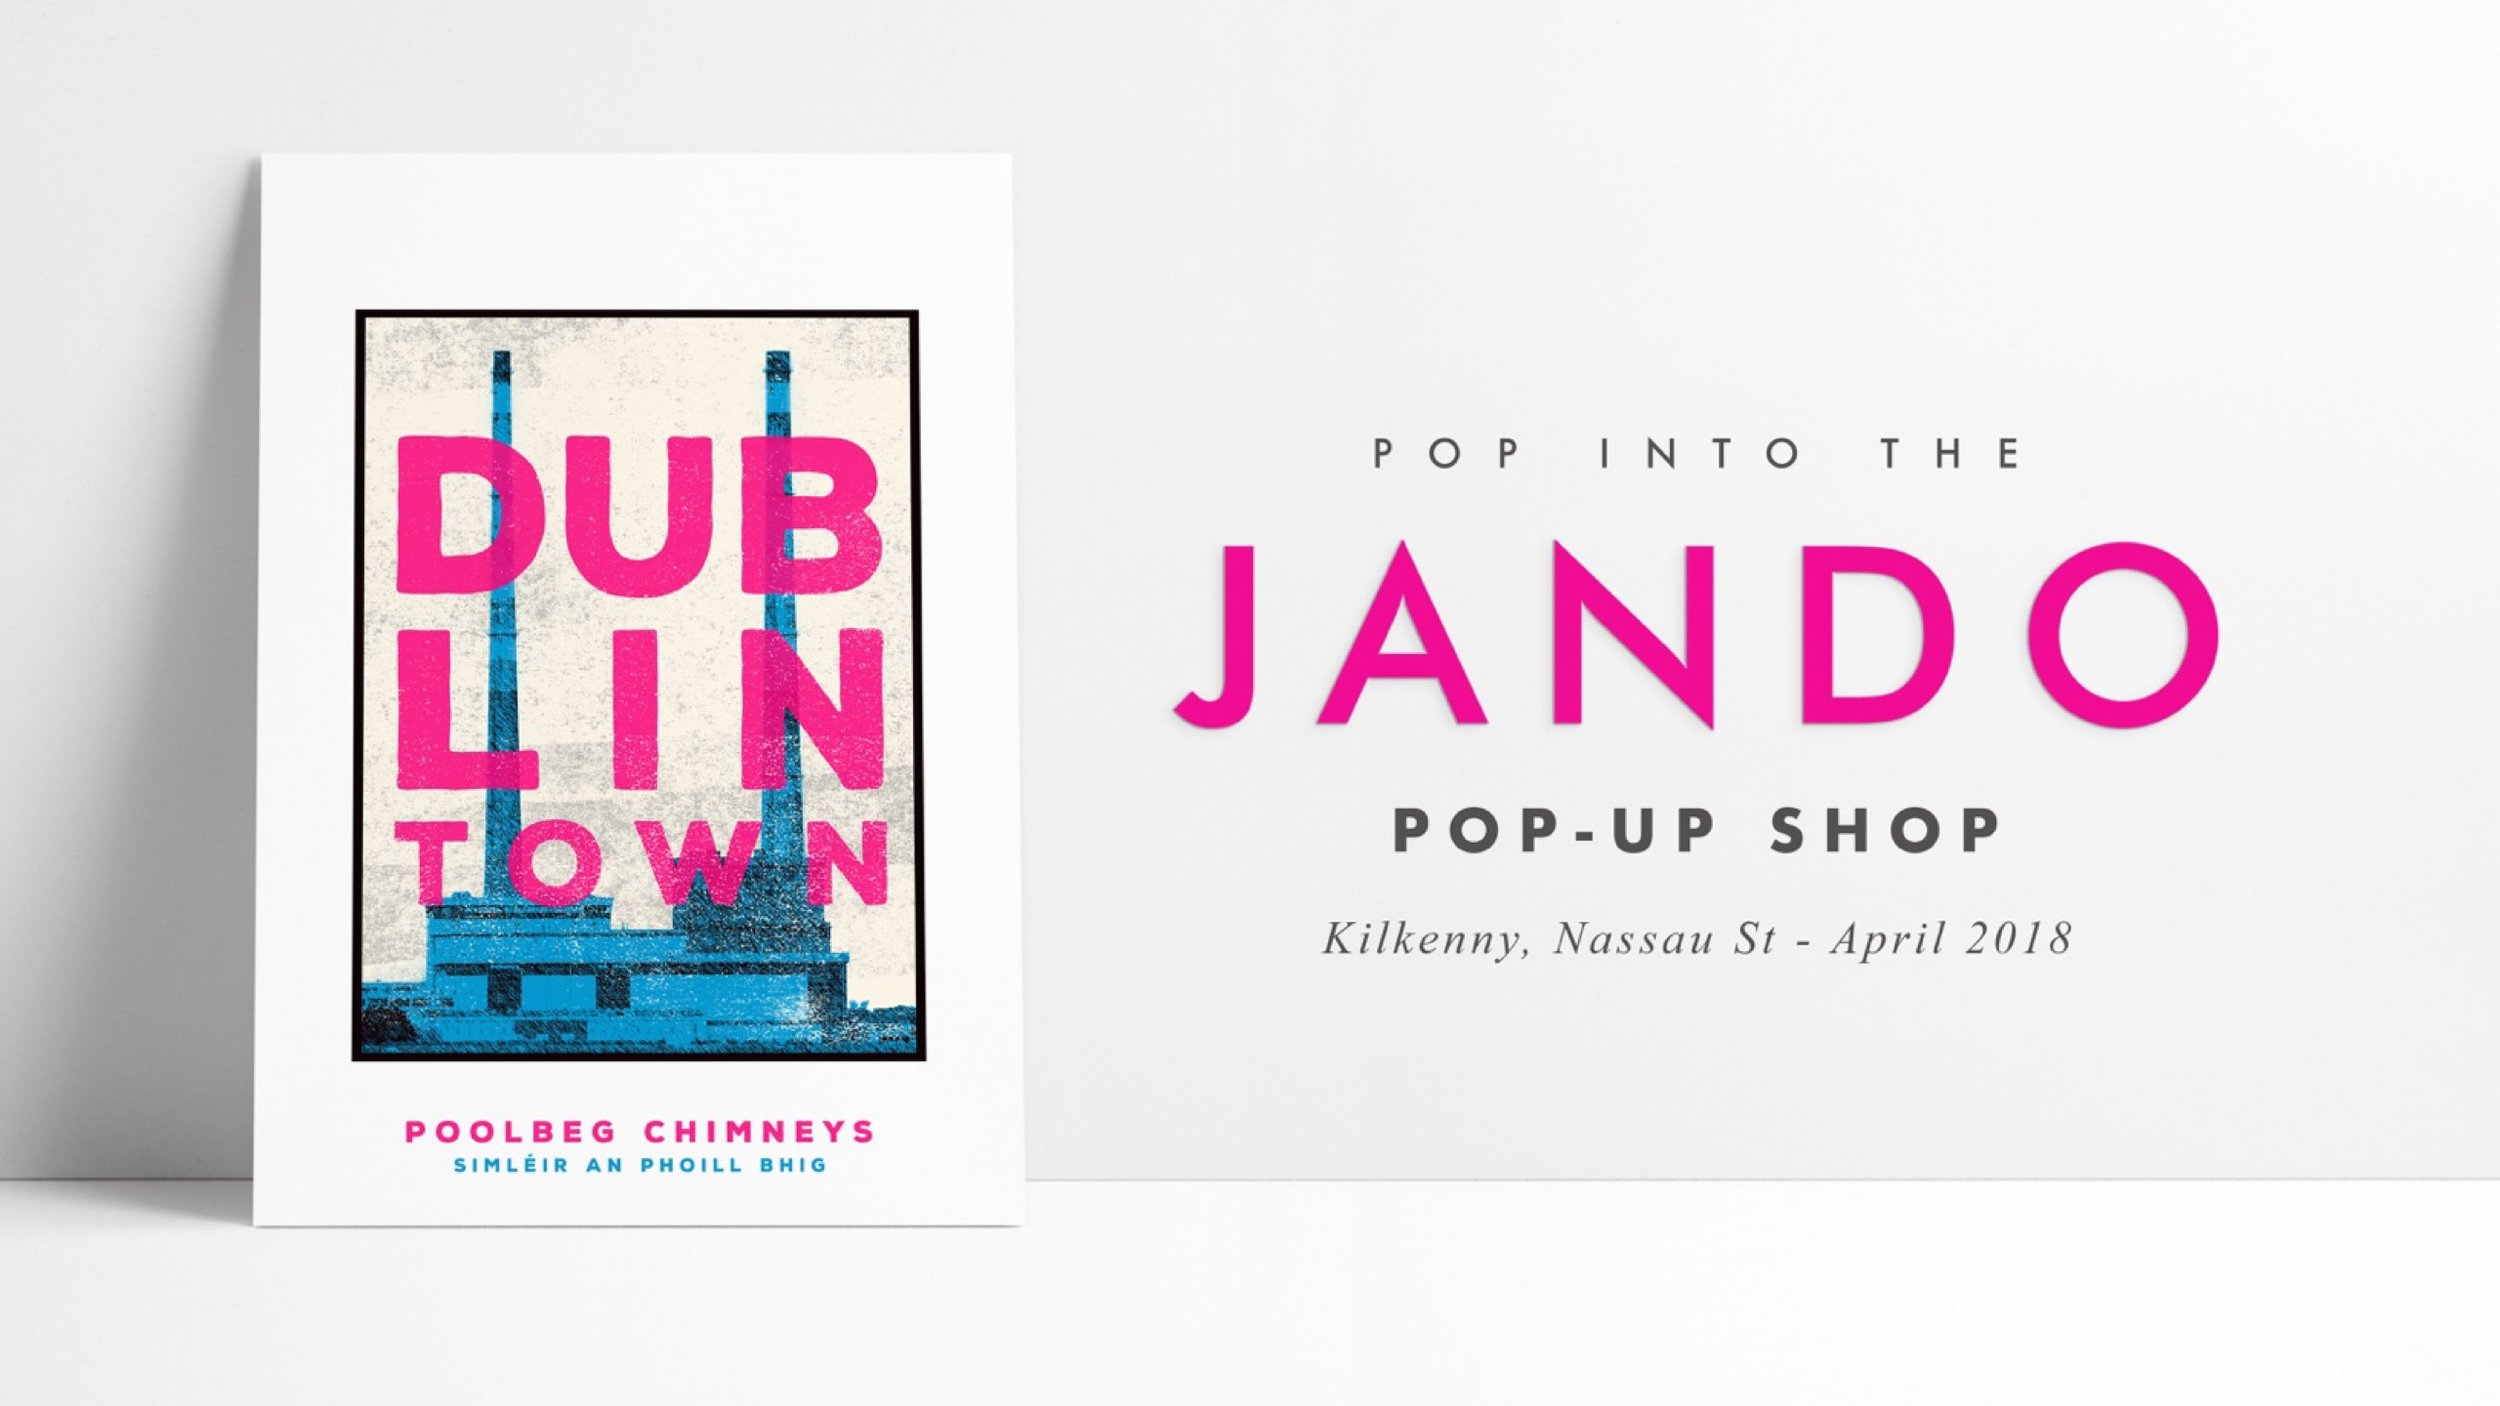 JANDO KK POP UP - TWITTER ANNOUNCEMENT DT POOLBEG.JPG